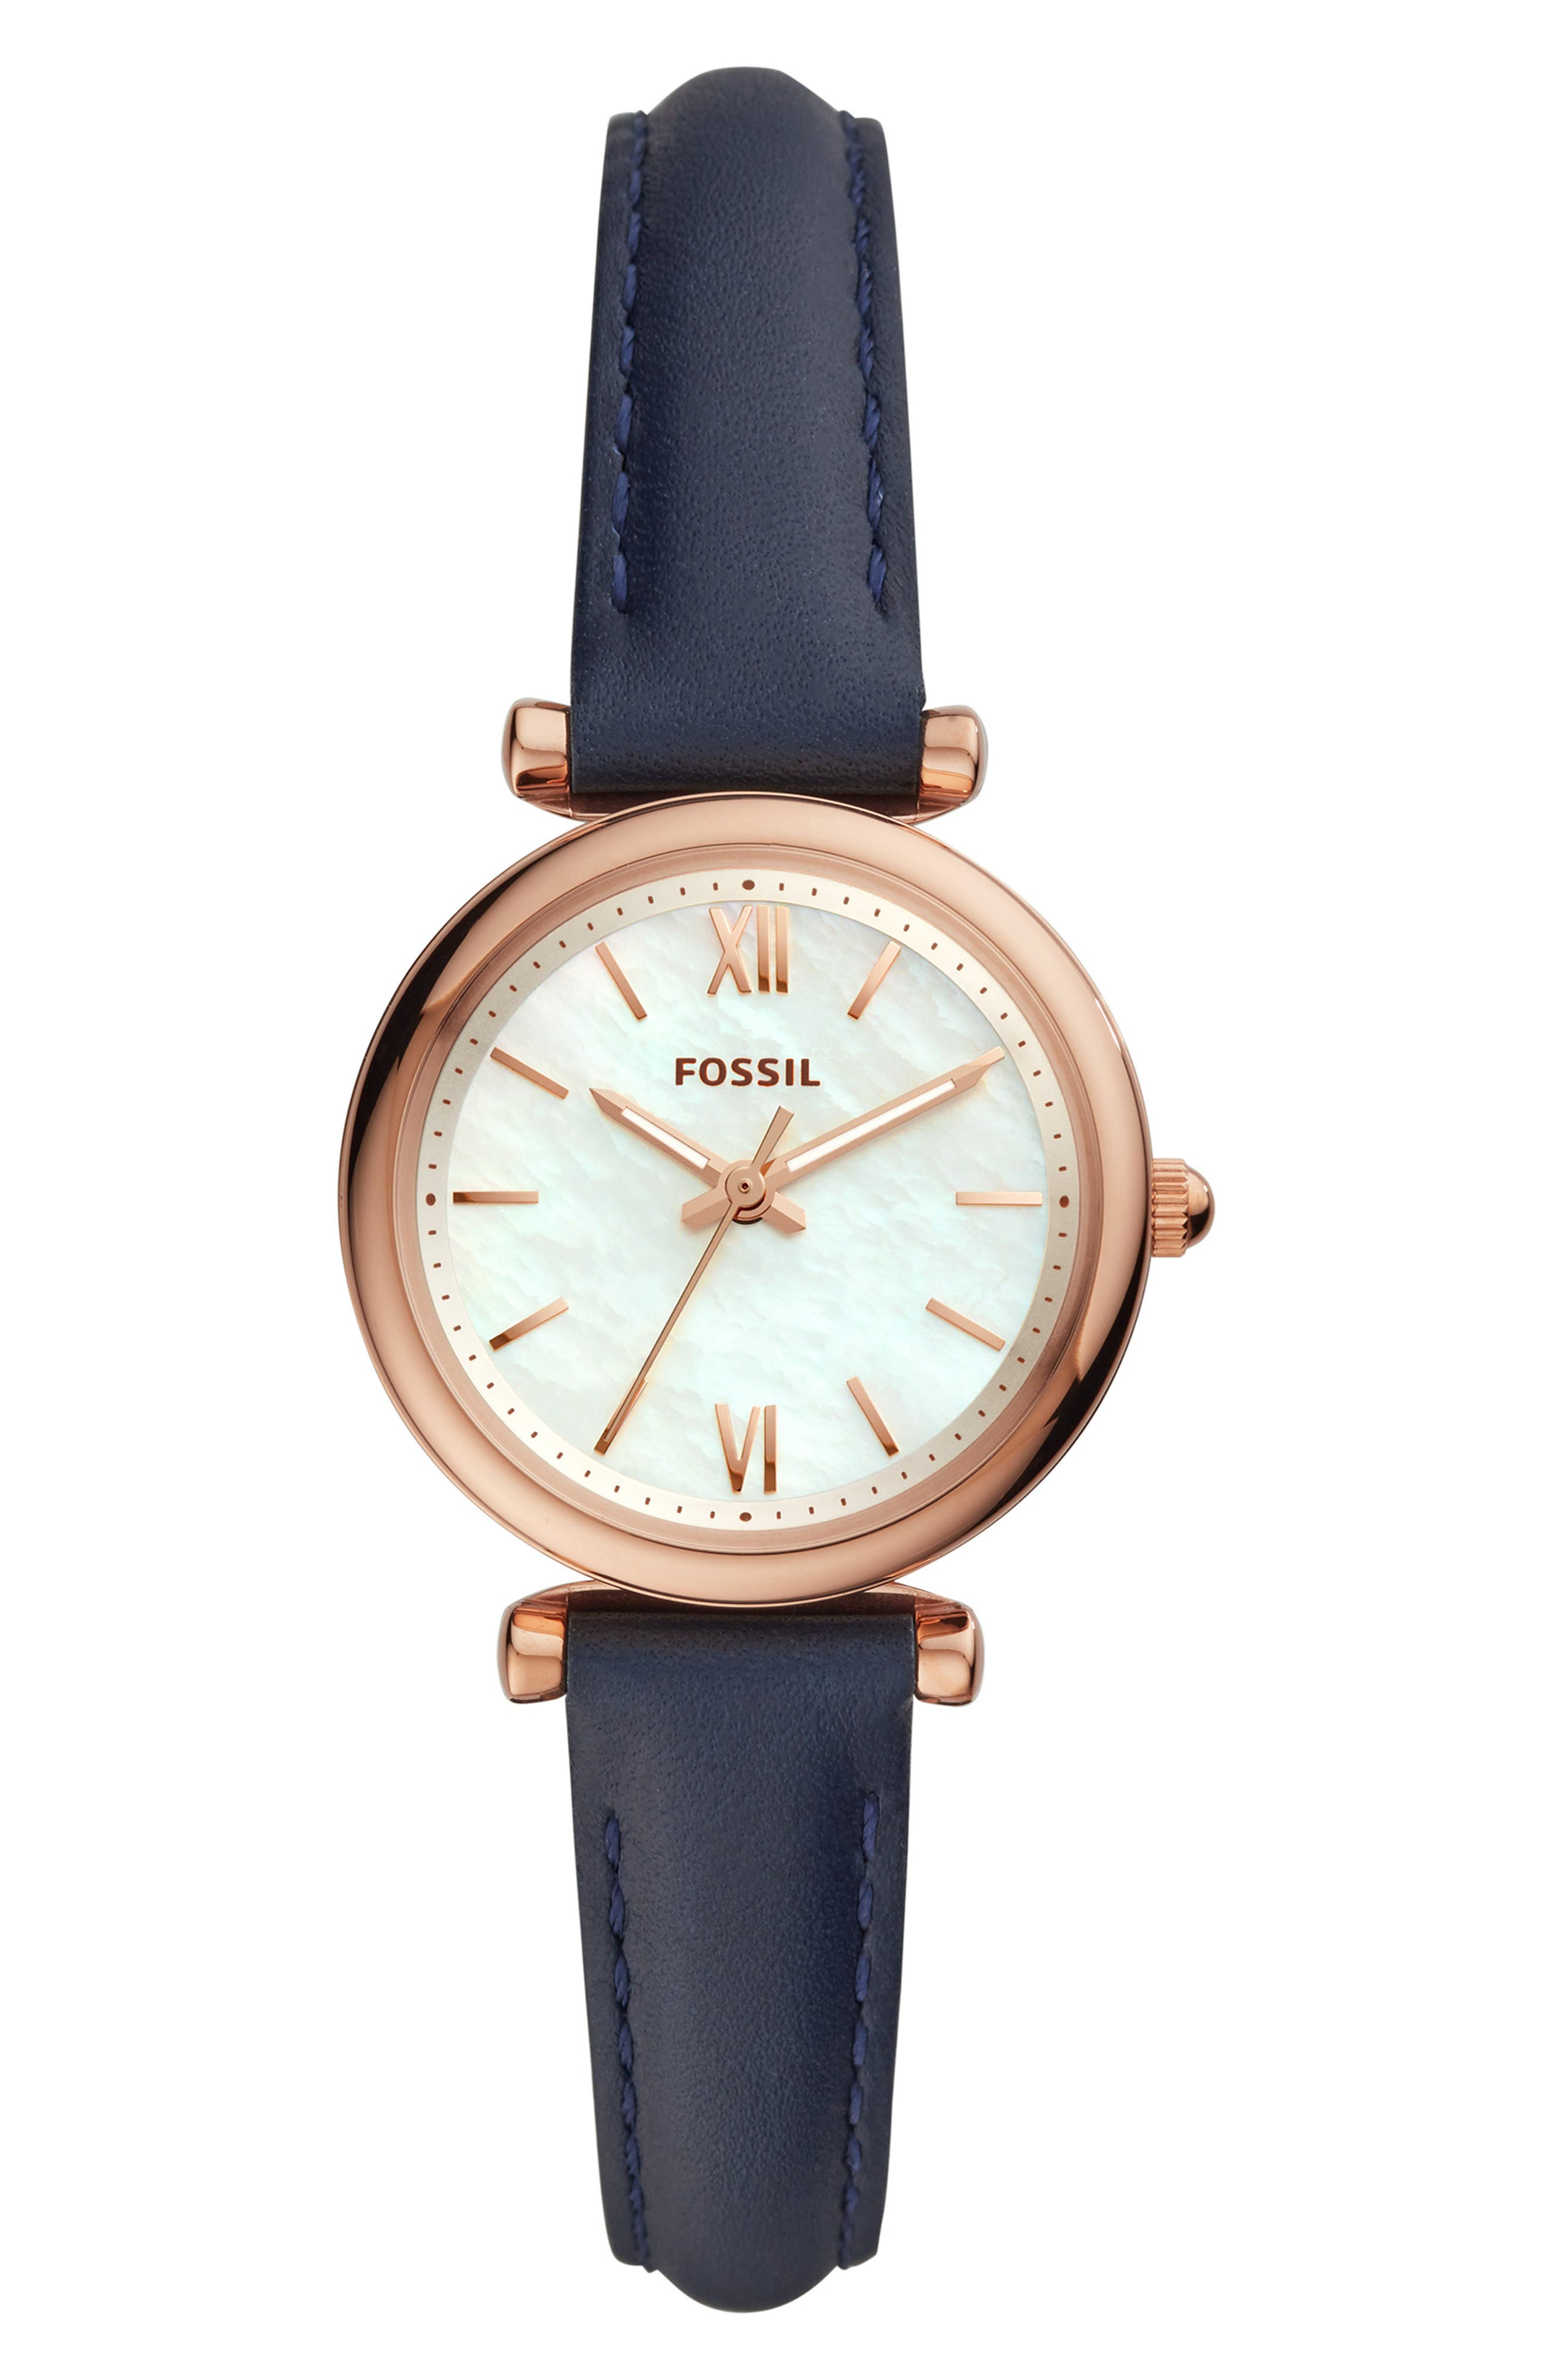 FOSSIL Mini Carlie Star Leather Strap Watch, 28mm, Main, color, NAVY/ WHITE MOP/ ROSE GOLD